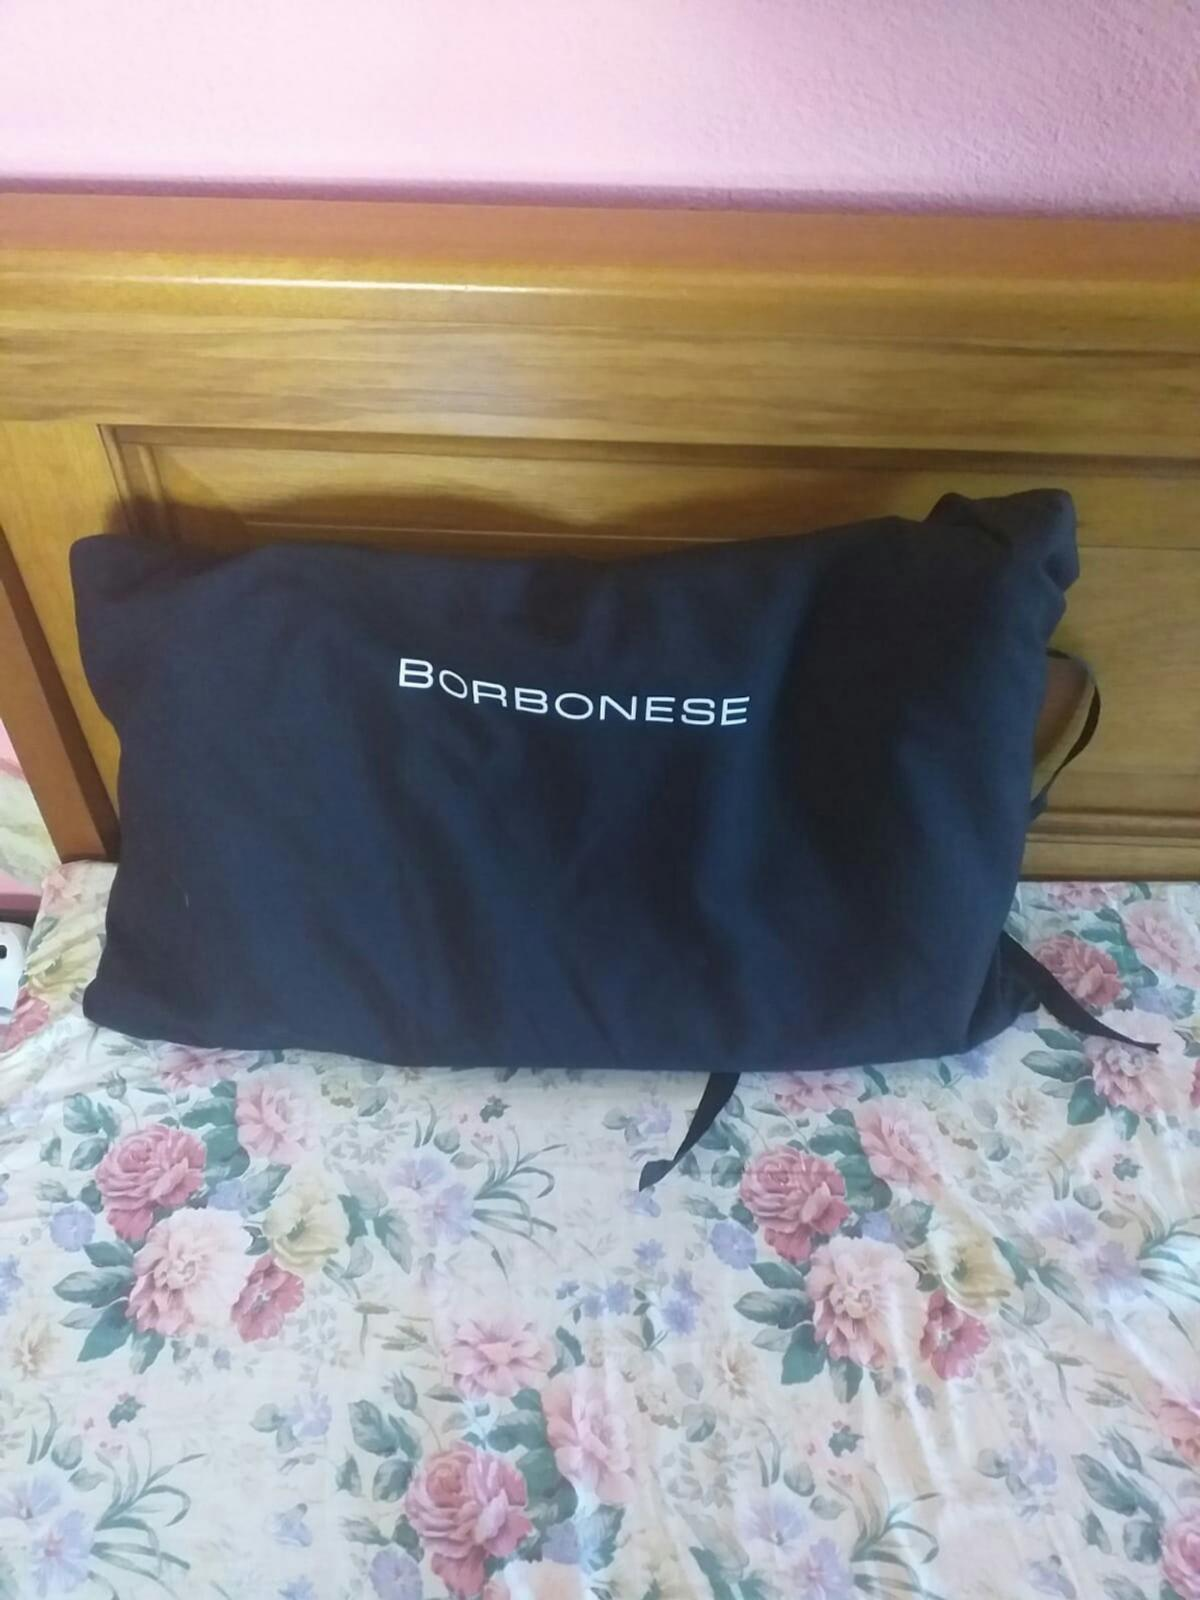 Borsa Borbonese In 20014 Nerviano For 150 00 For Sale Shpock